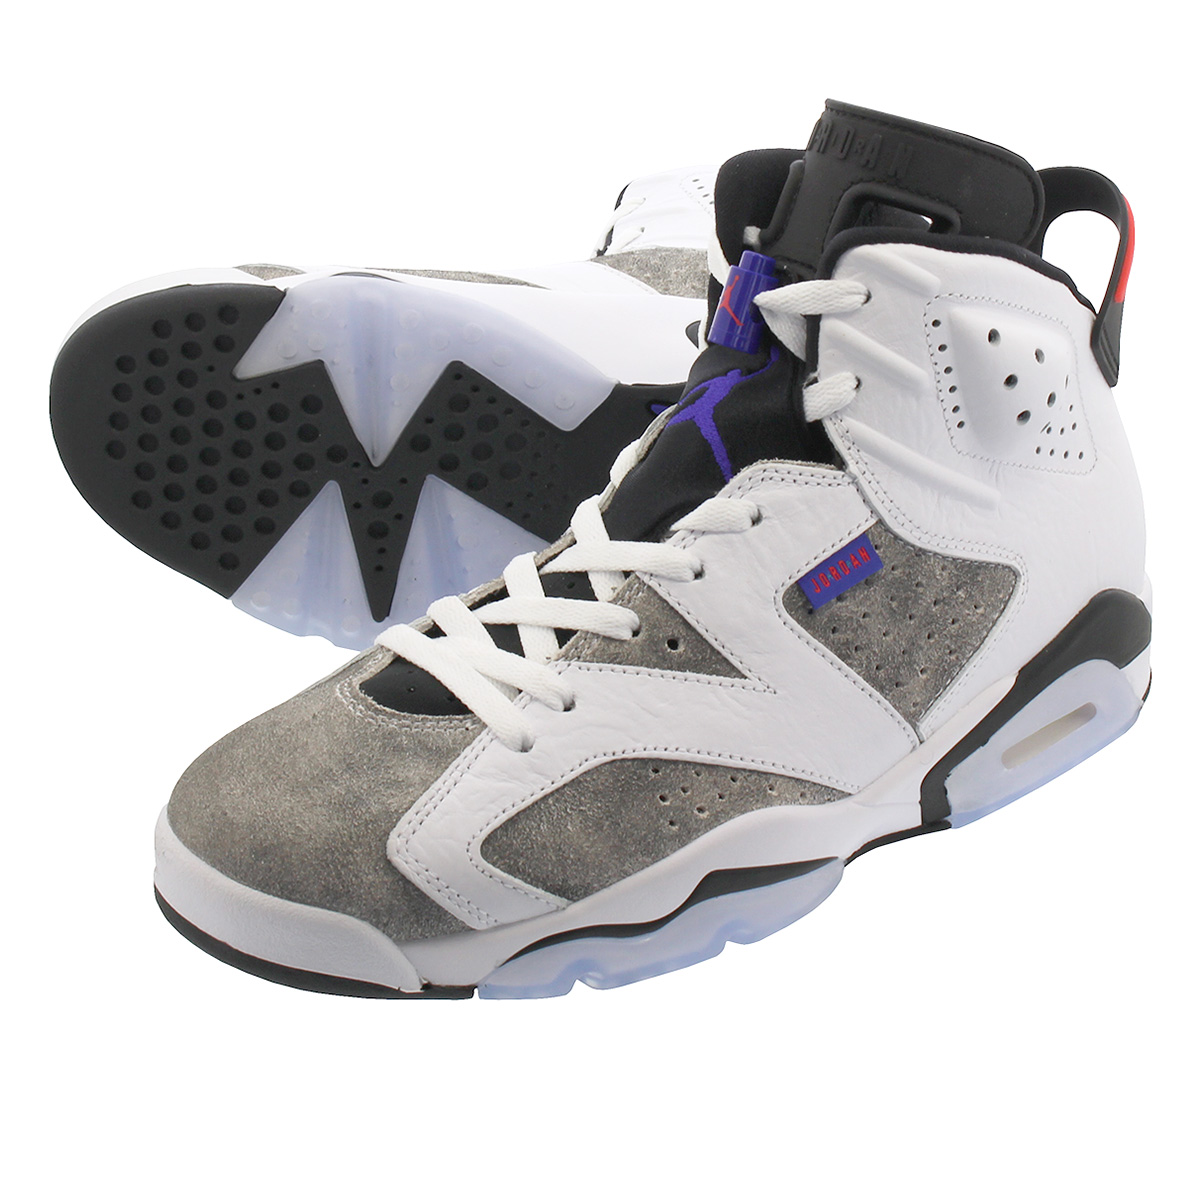 【ビッグサイズ】 NIKE AIR JORDAN 6 RETRO 【FLIGHT NOSTALGIA】 ナイキ エア ジョーダン 6 レトロWHITE/BLACK/INFRARED 23/DARK CONCORD ci3125-100